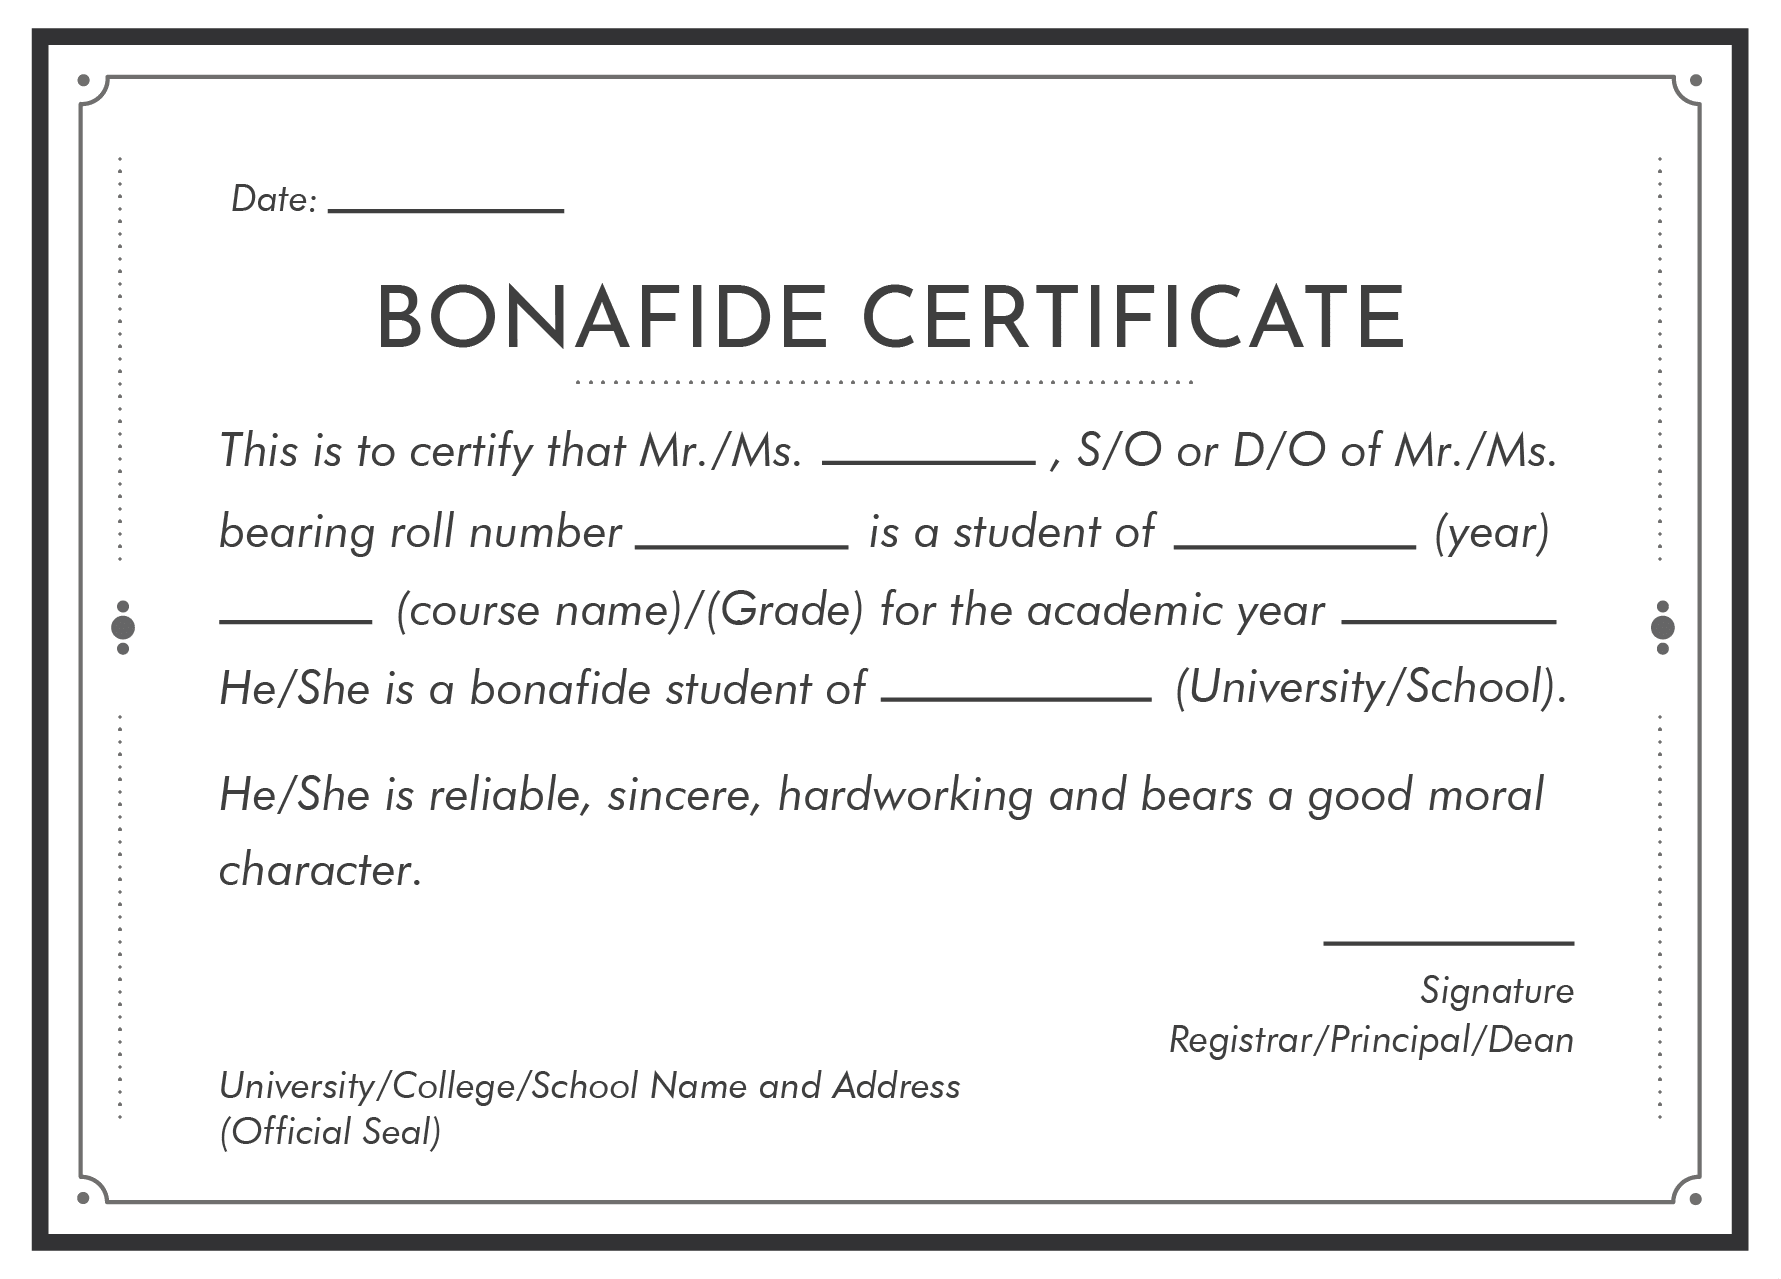 Bonafide Certificate Format For Students Leverage Edu